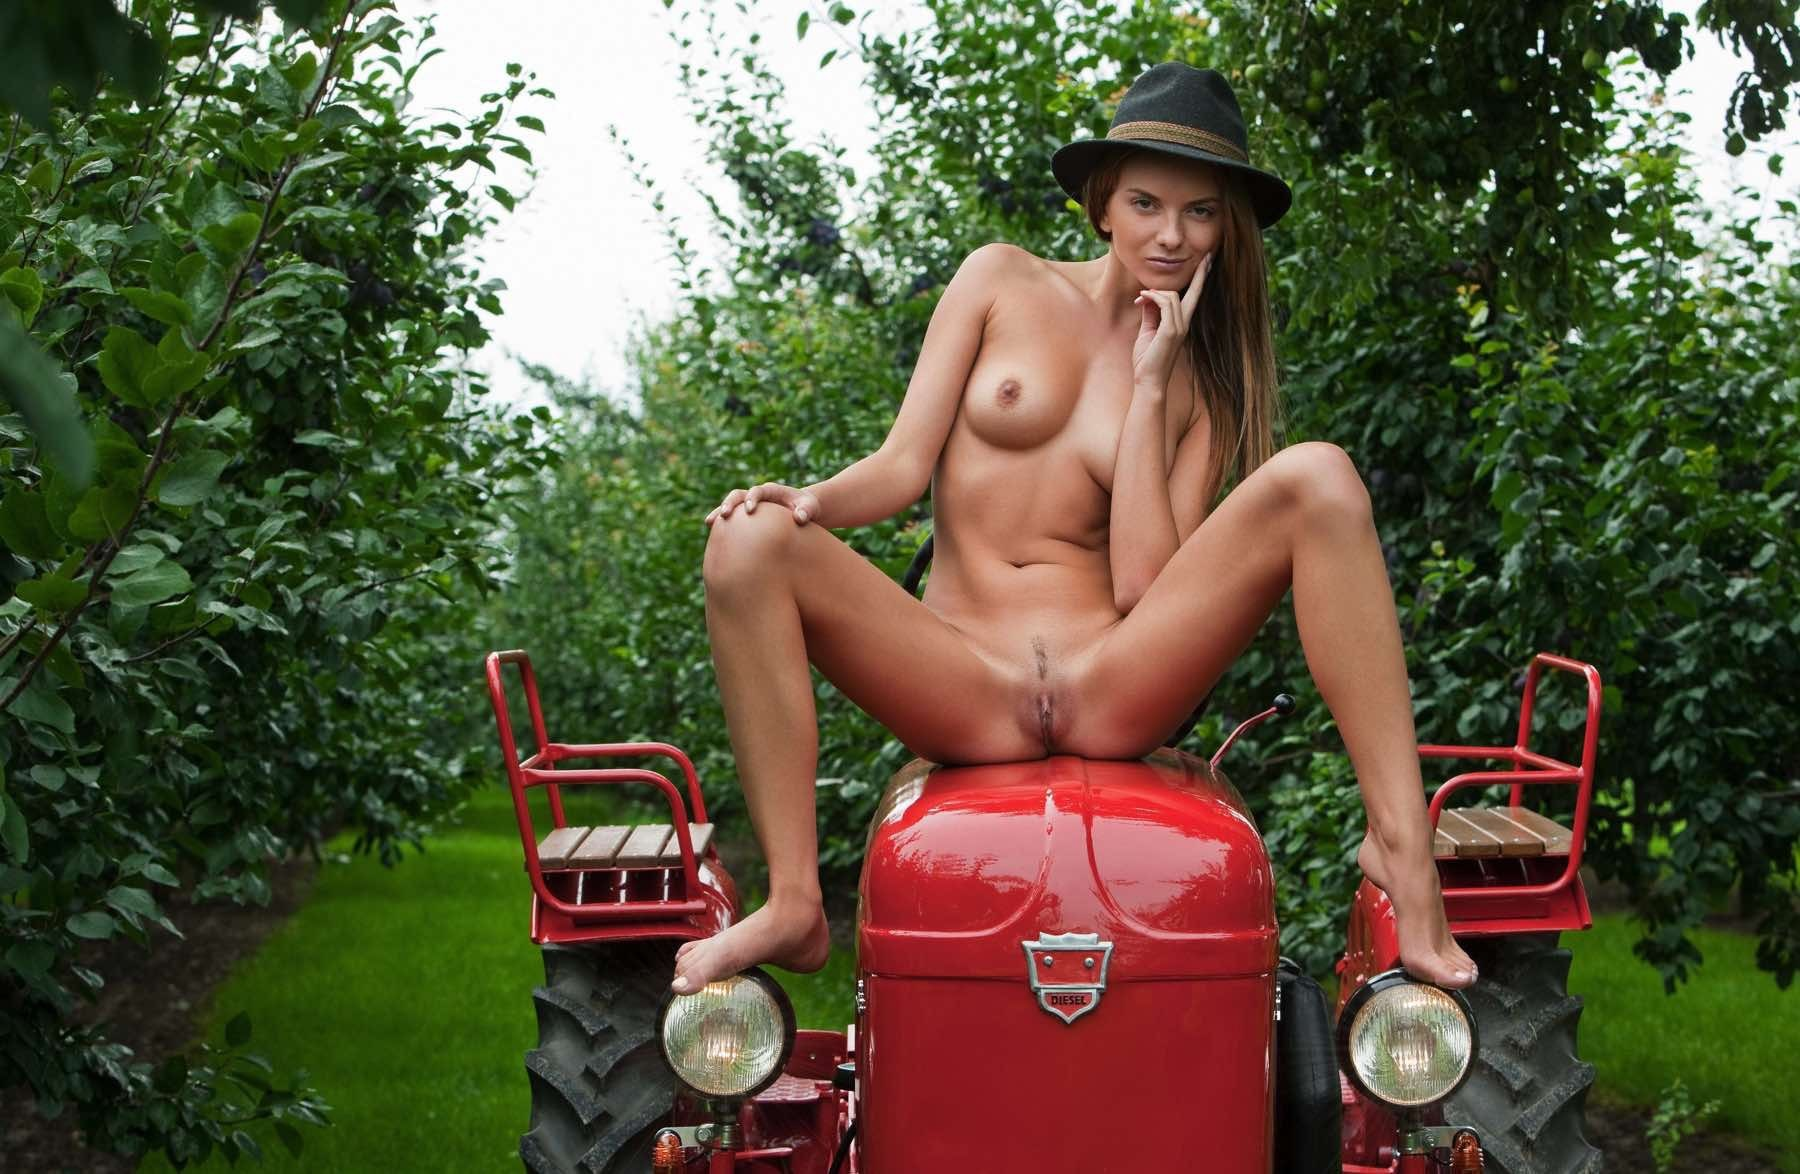 Sexy Teen On Farming Tractors Nude Have Sex